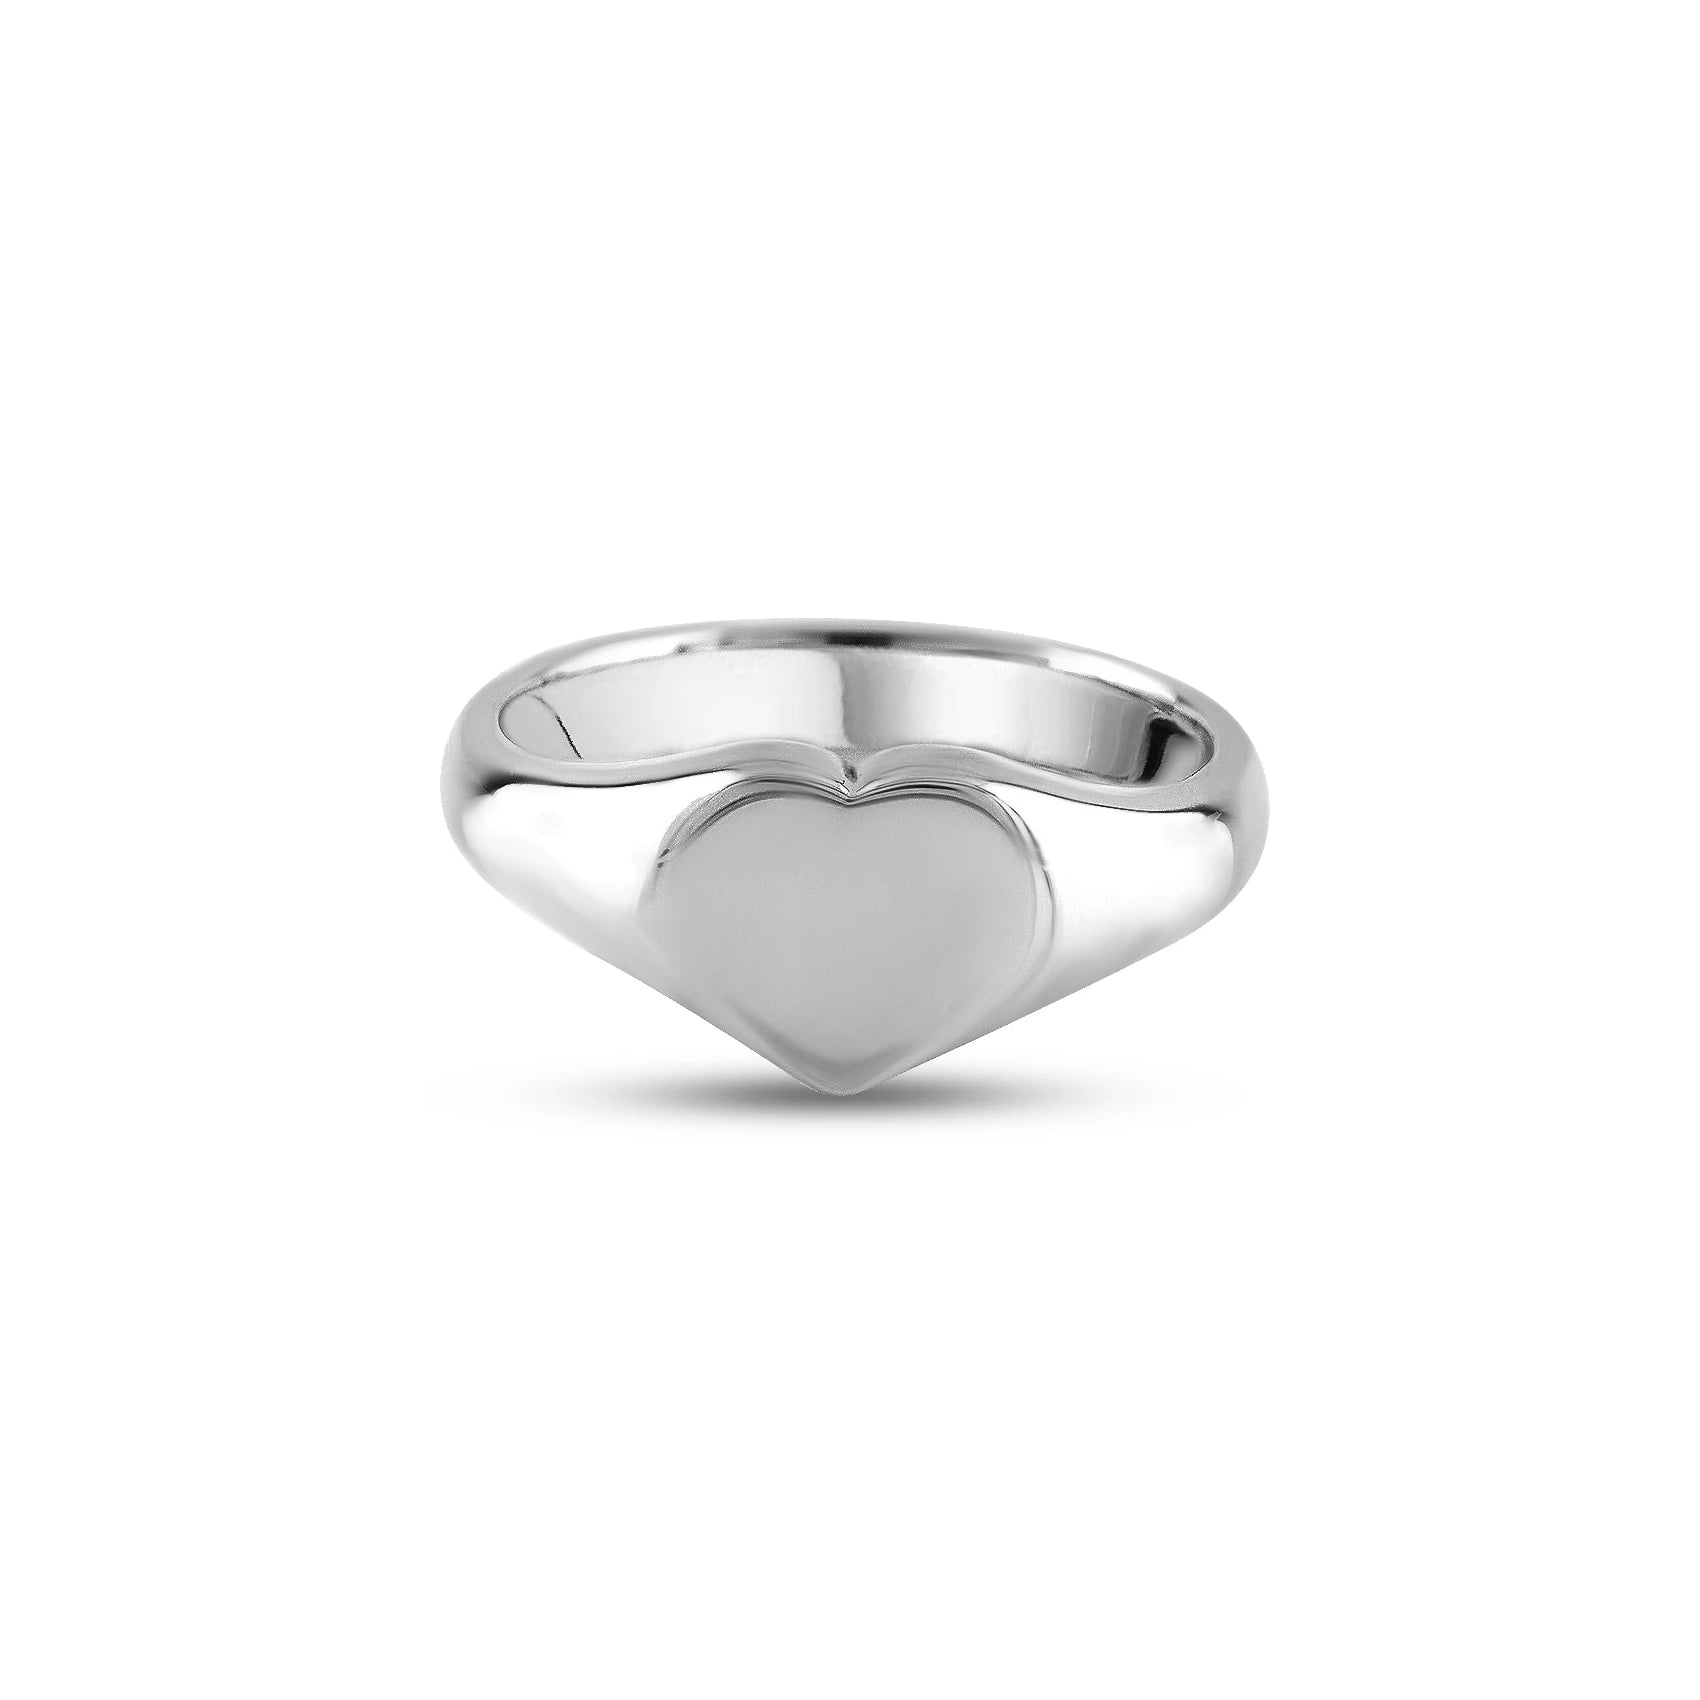 9ct White Gold 9 x 9mm Heart Signet Ring